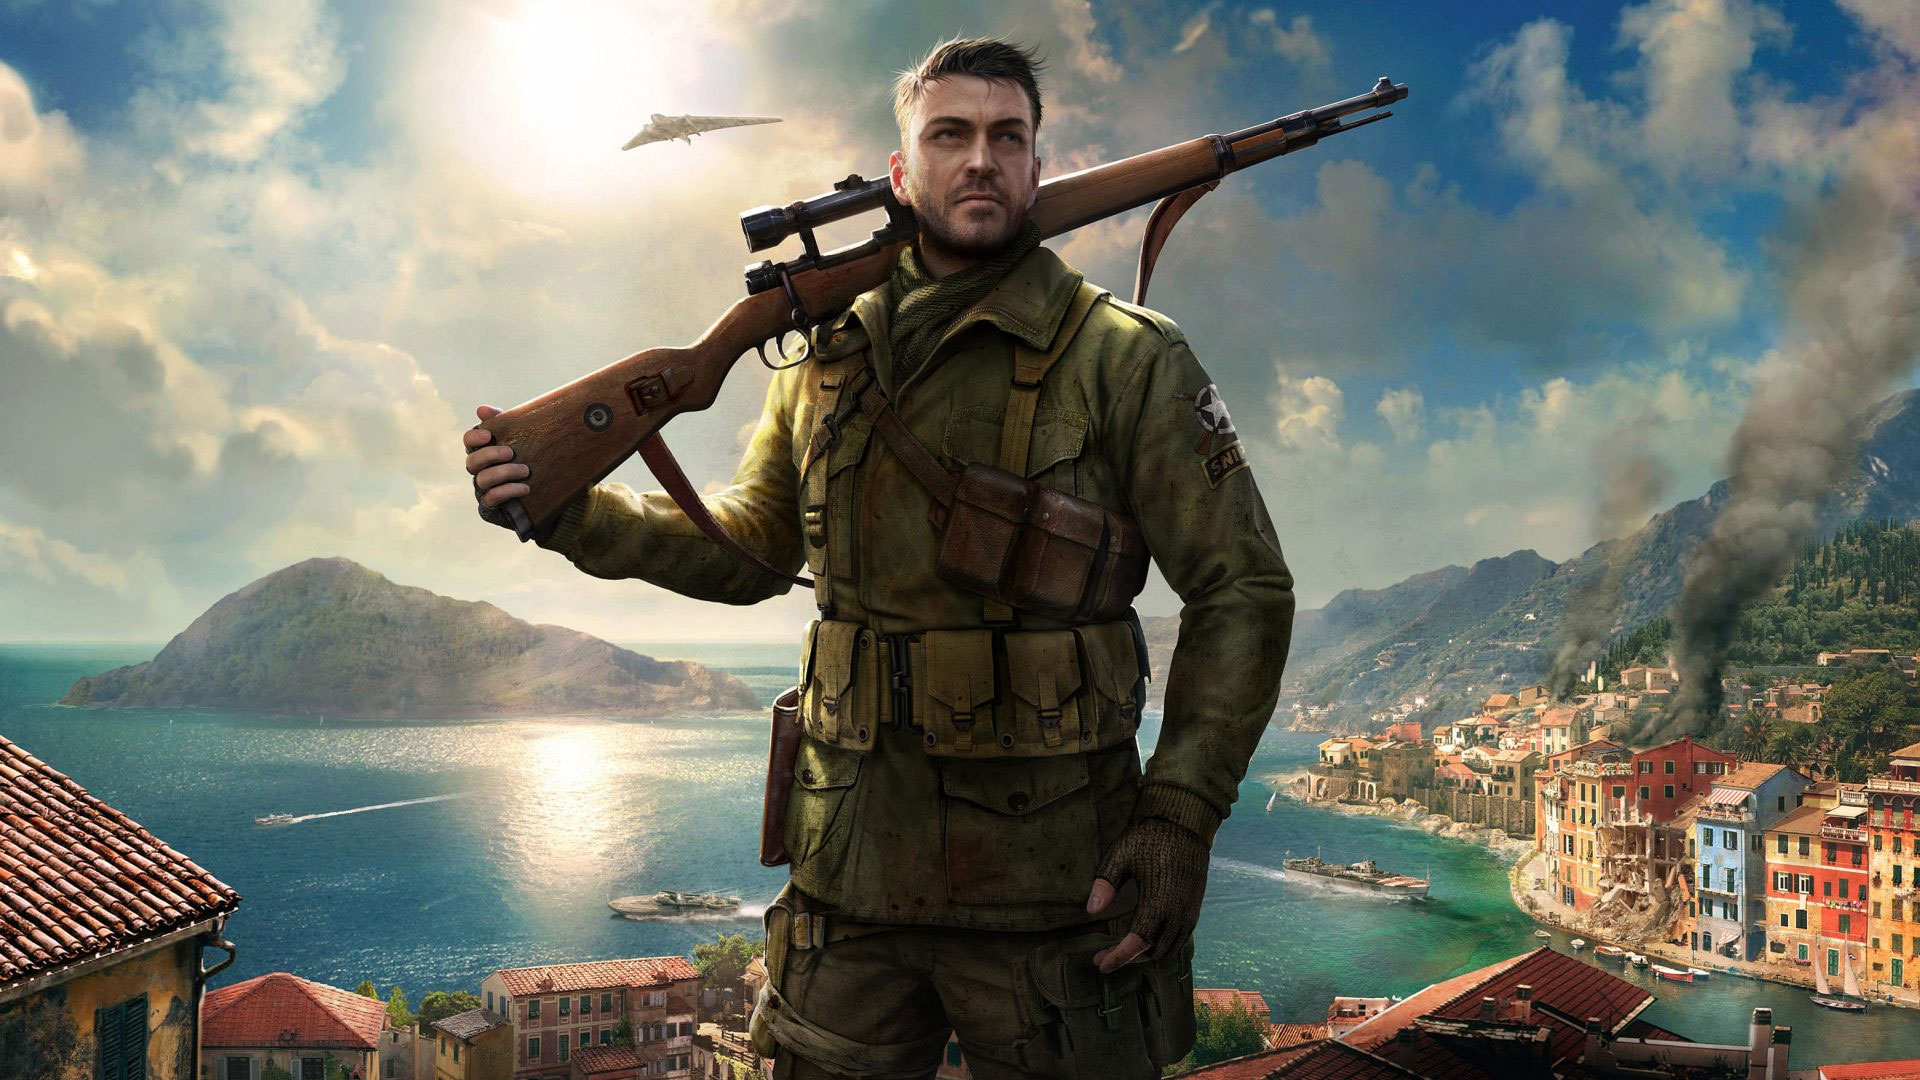 Sniper Elite 4 Wallpapers in Ultra HD 4K   Gameranx 1920x1080